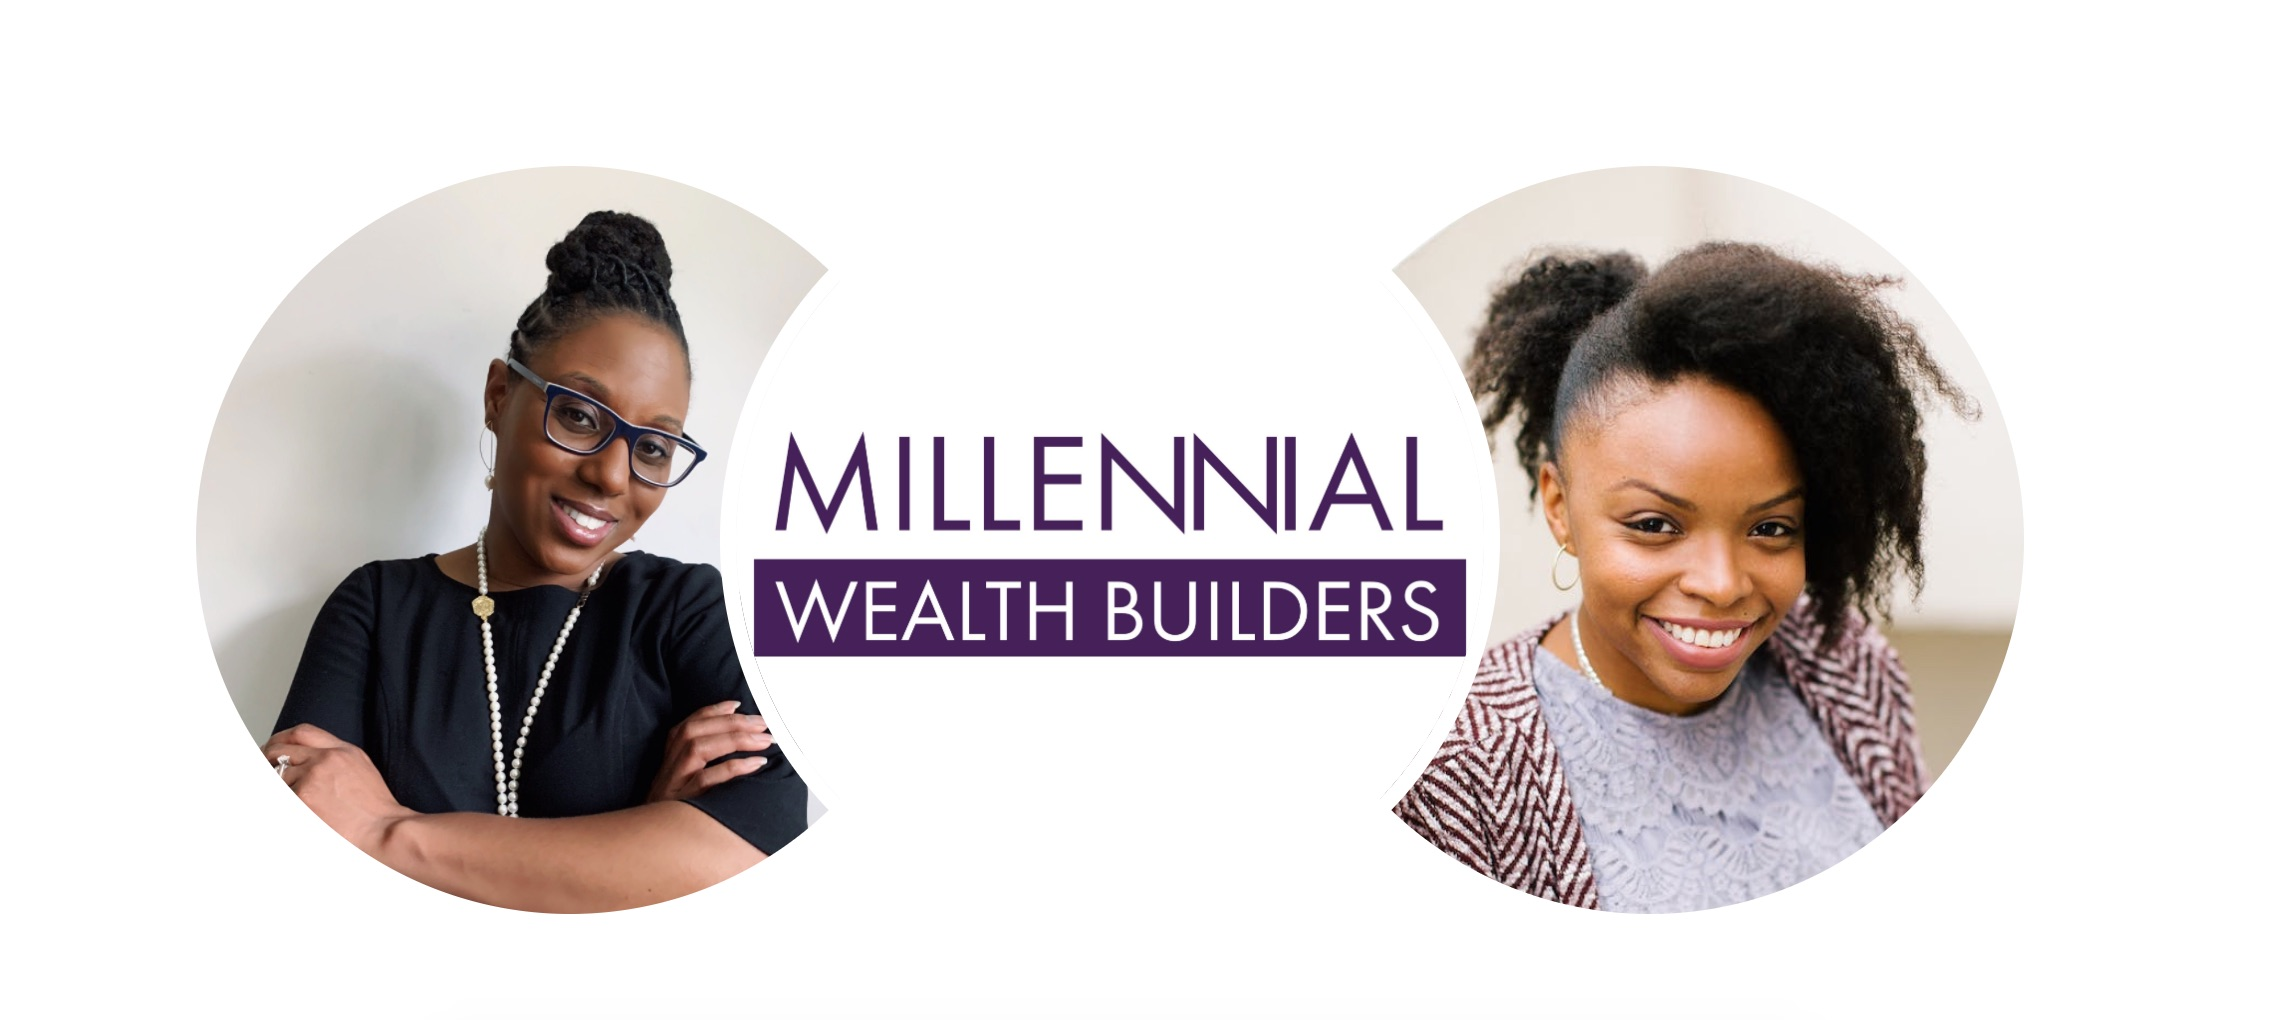 Millennial Wealth Builders co-produced by Danielle Desir and Acquania Escarne